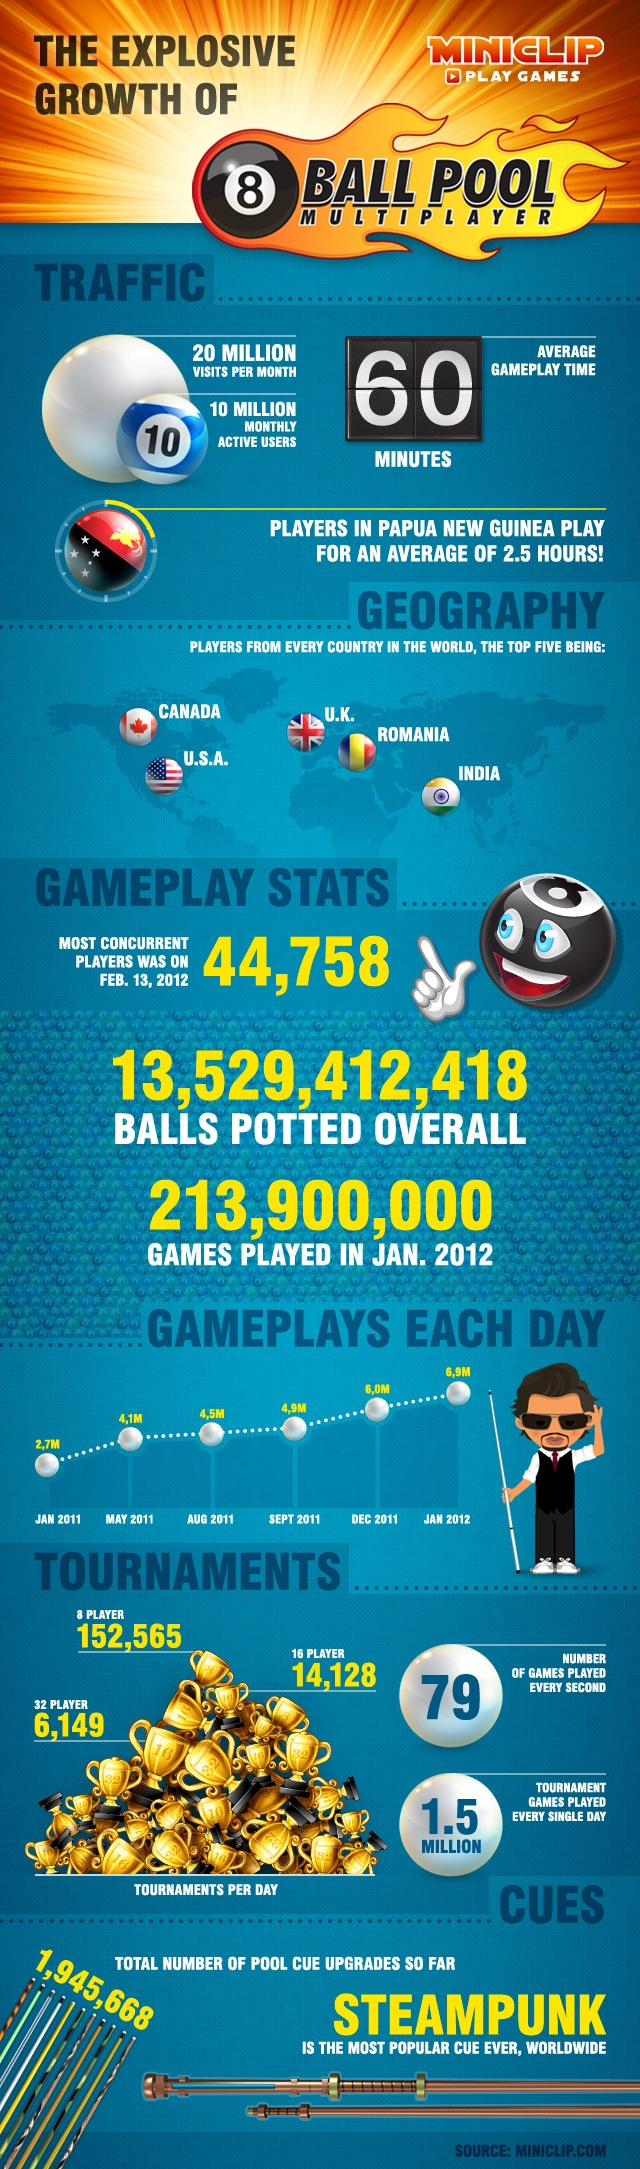 8 Ball Pool Infographic